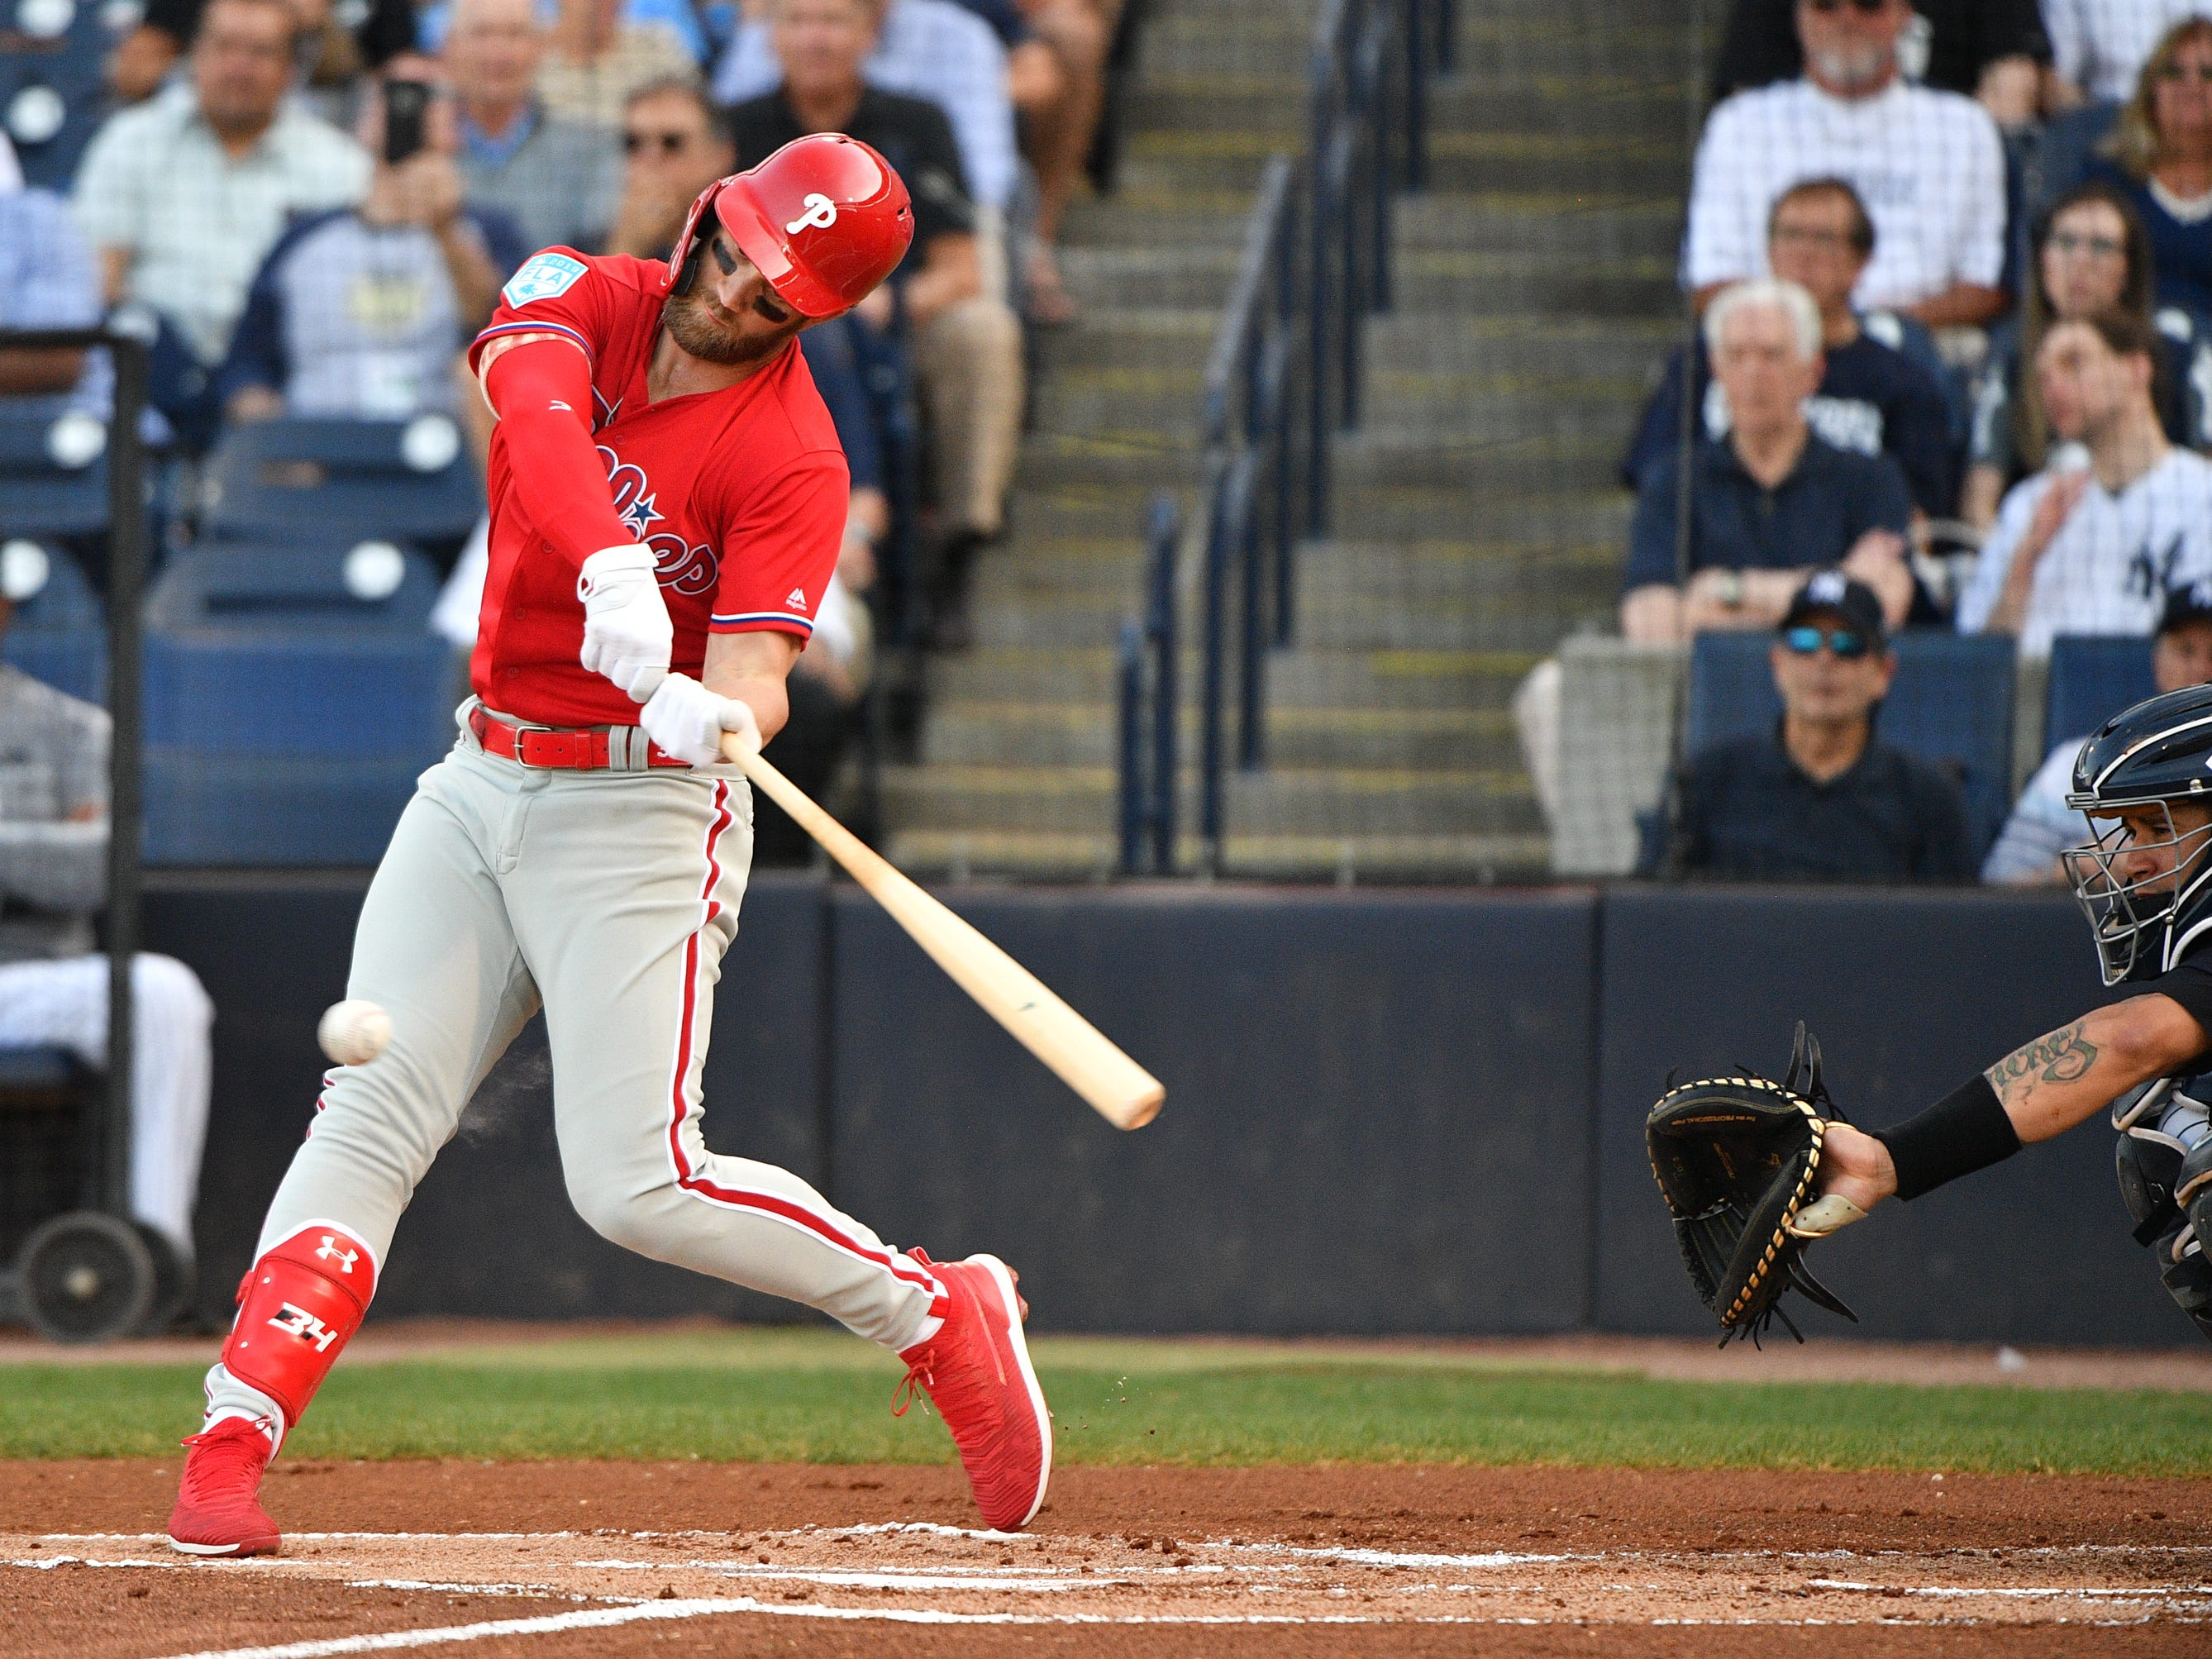 Bryce Harper #3 of the Philadelphia Phillies at bat in the first inning during the spring training game against the New York Yankees at Steinbrenner Field on March 13, 2019 in Tampa, Florida.